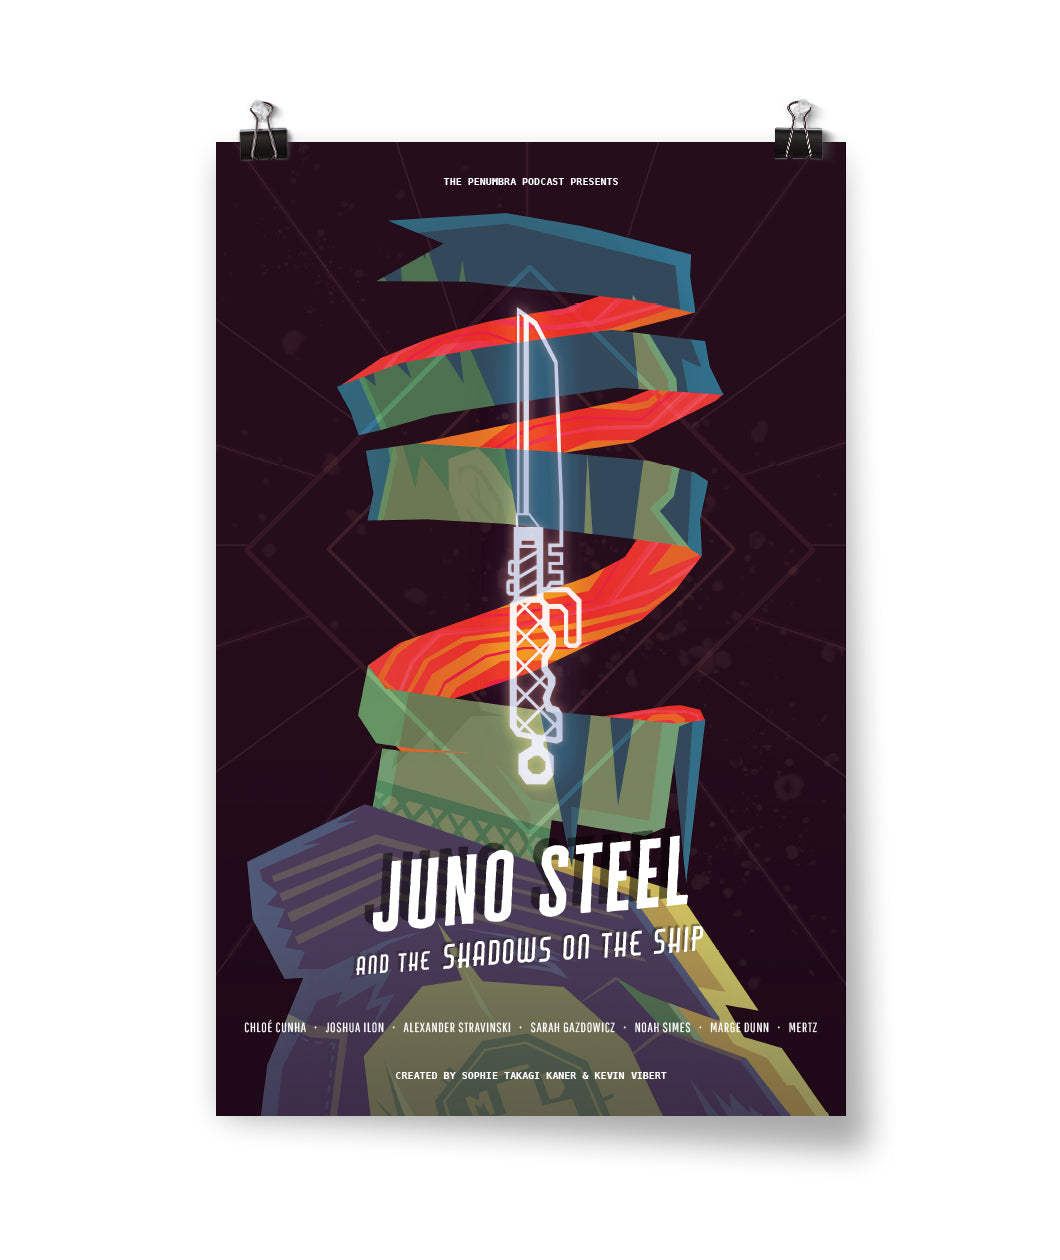 Juno Steel and the Shadows of the Ship